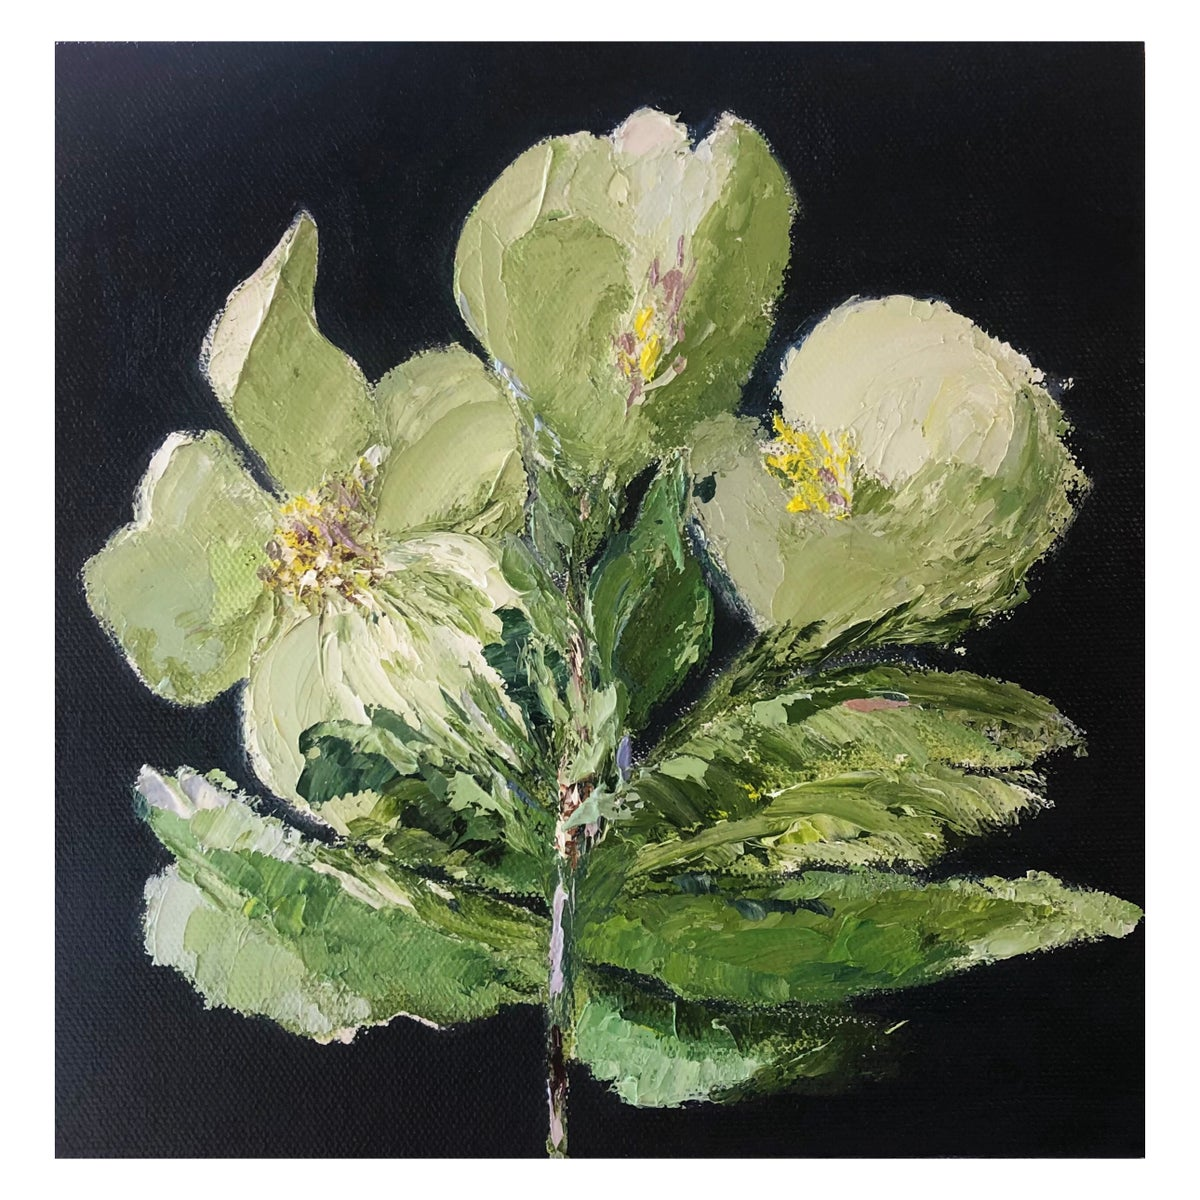 Image of 'Flower Stems' 2021 Oil on Canvas